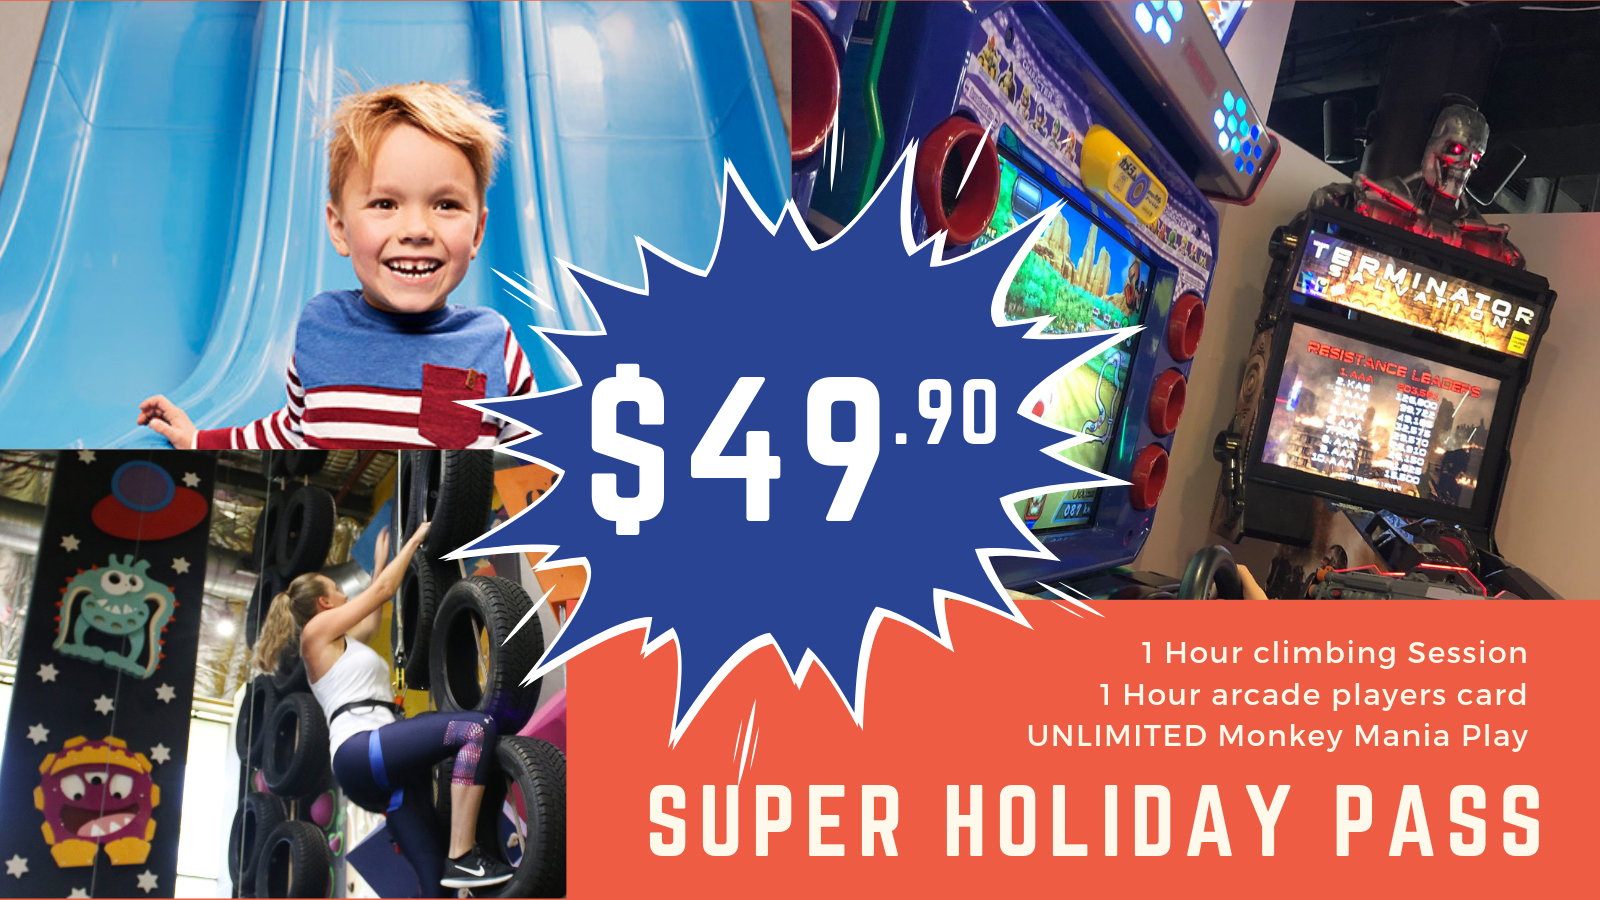 Super Holiday Pass